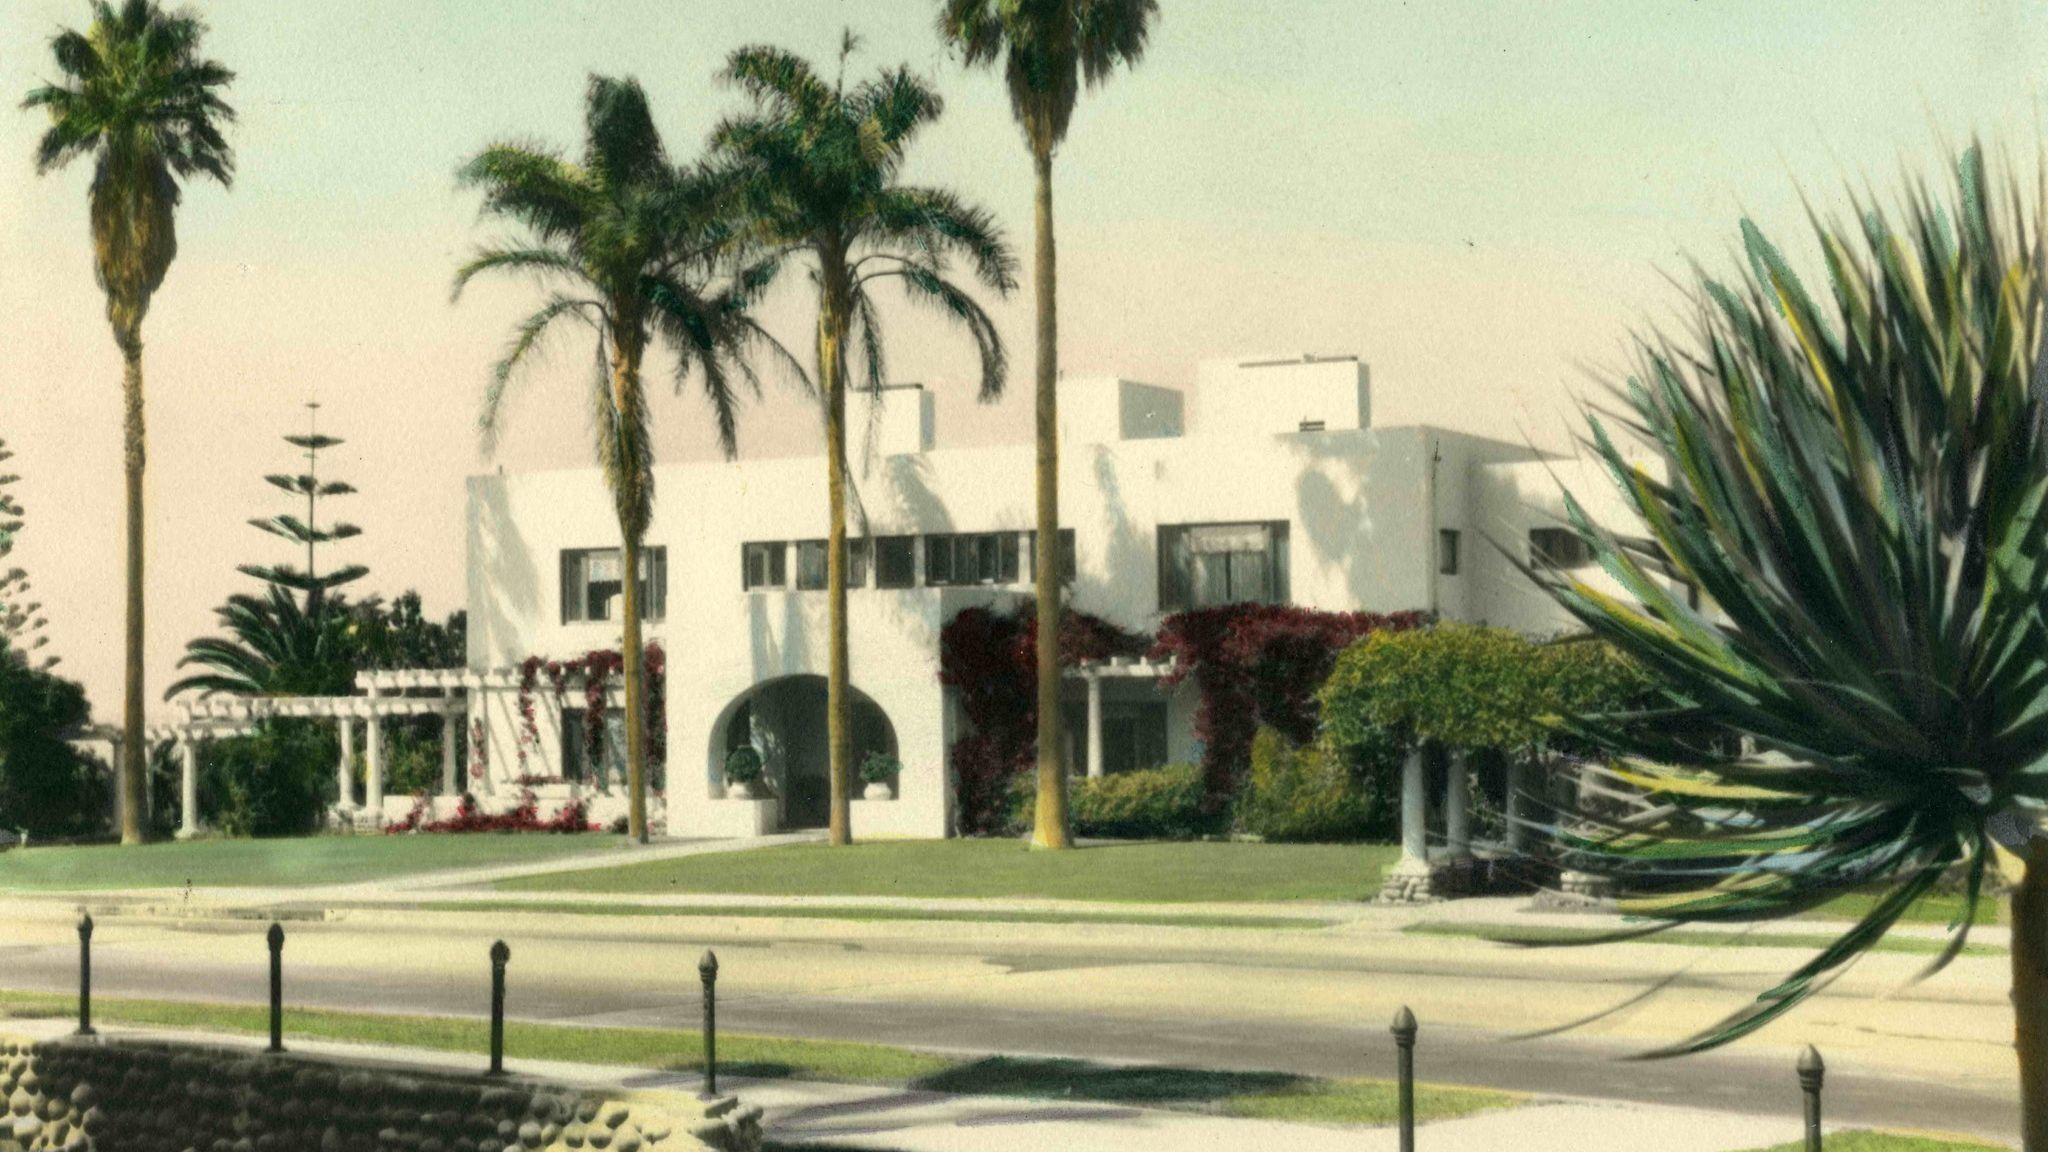 The house that architect Irving Gill designed for Ellen Browning Scripps in 1915 remains a part of the new design.